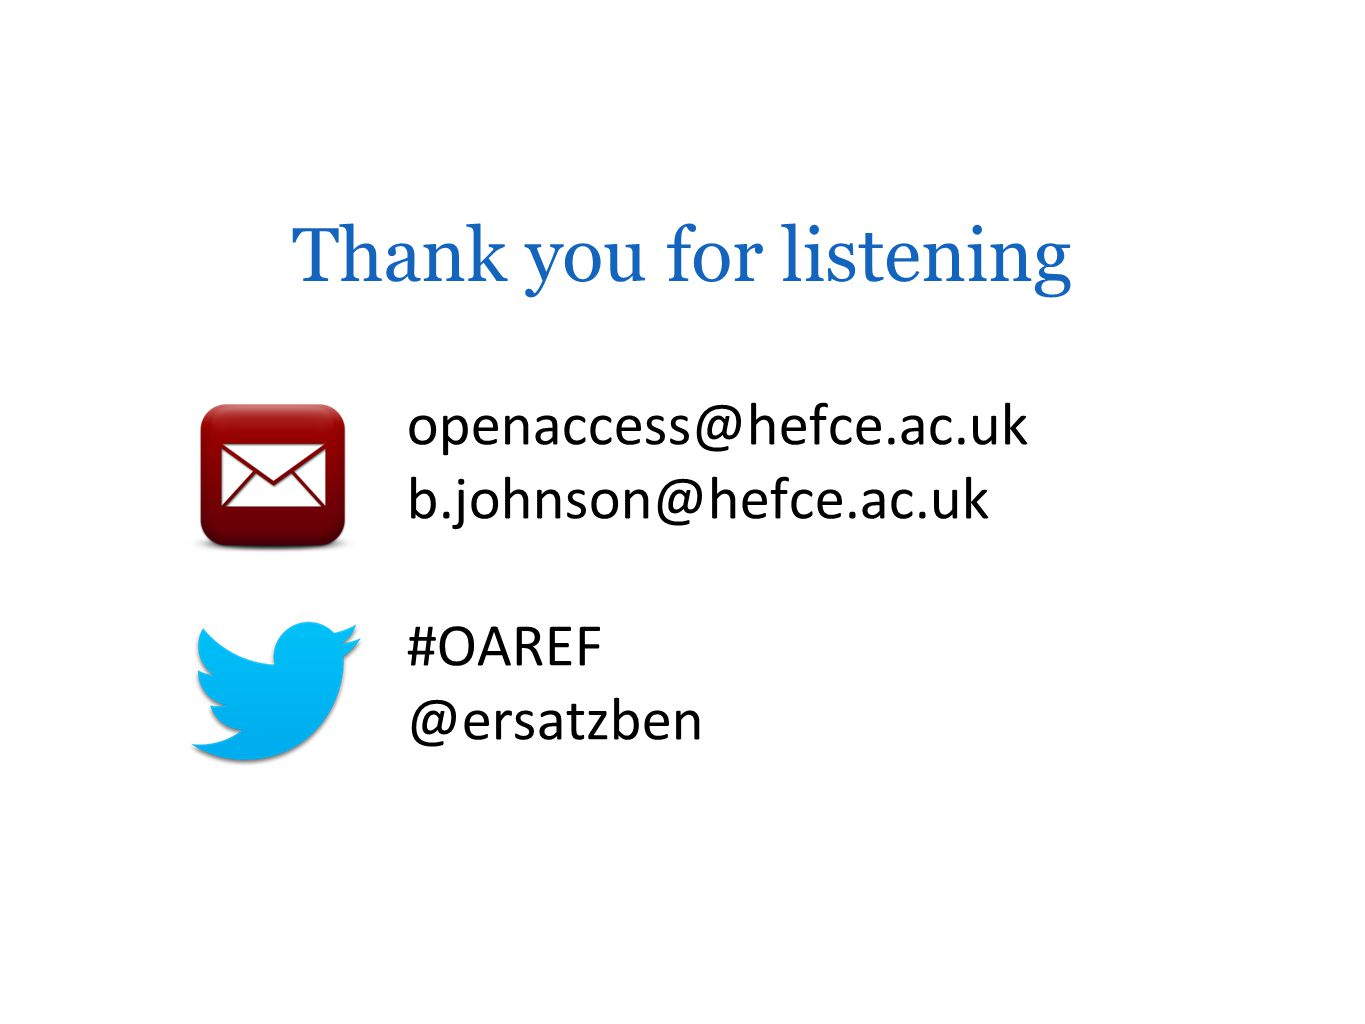 Thank you for listening openaccess@hefce.ac.uk b.johnson@hefce.ac.uk #OAREF @ersatzben